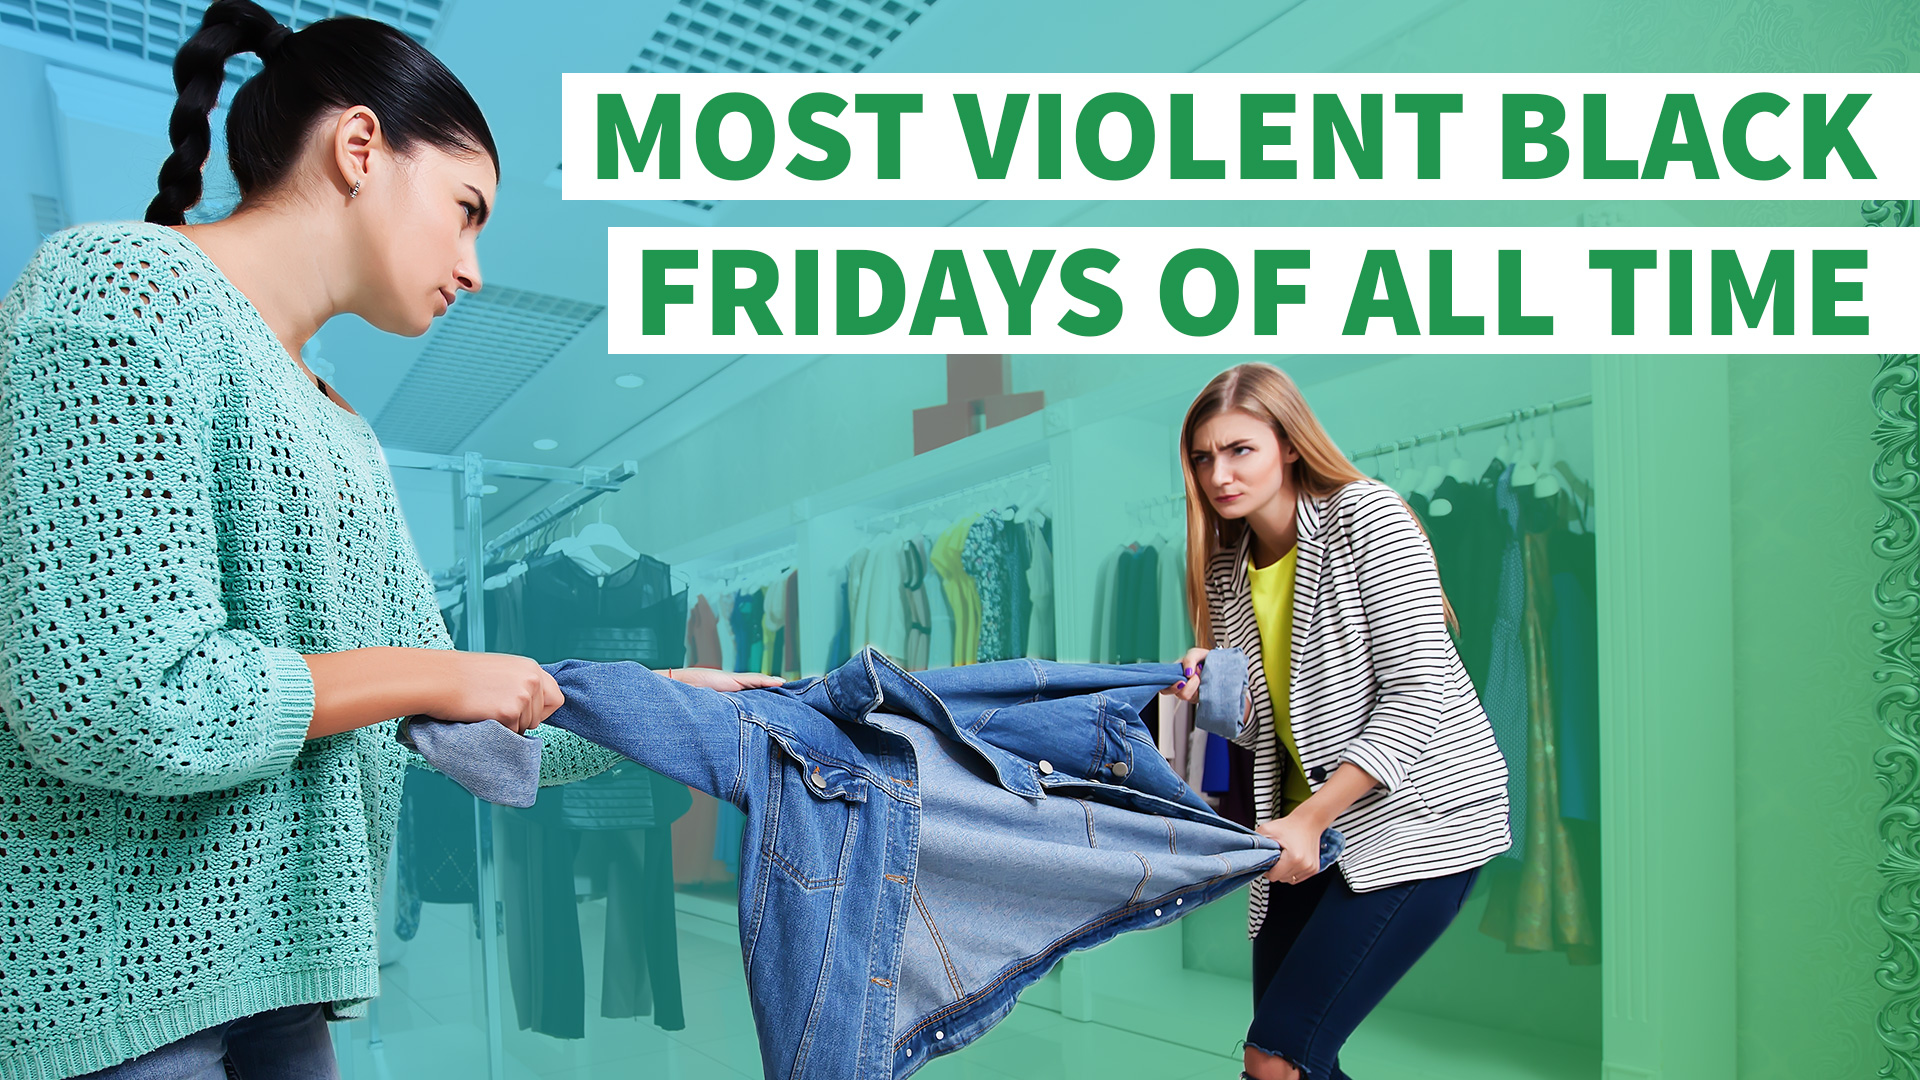 Black Friday Shopping The Most Violent Black Friday Fights Of All Time Gobankingrates